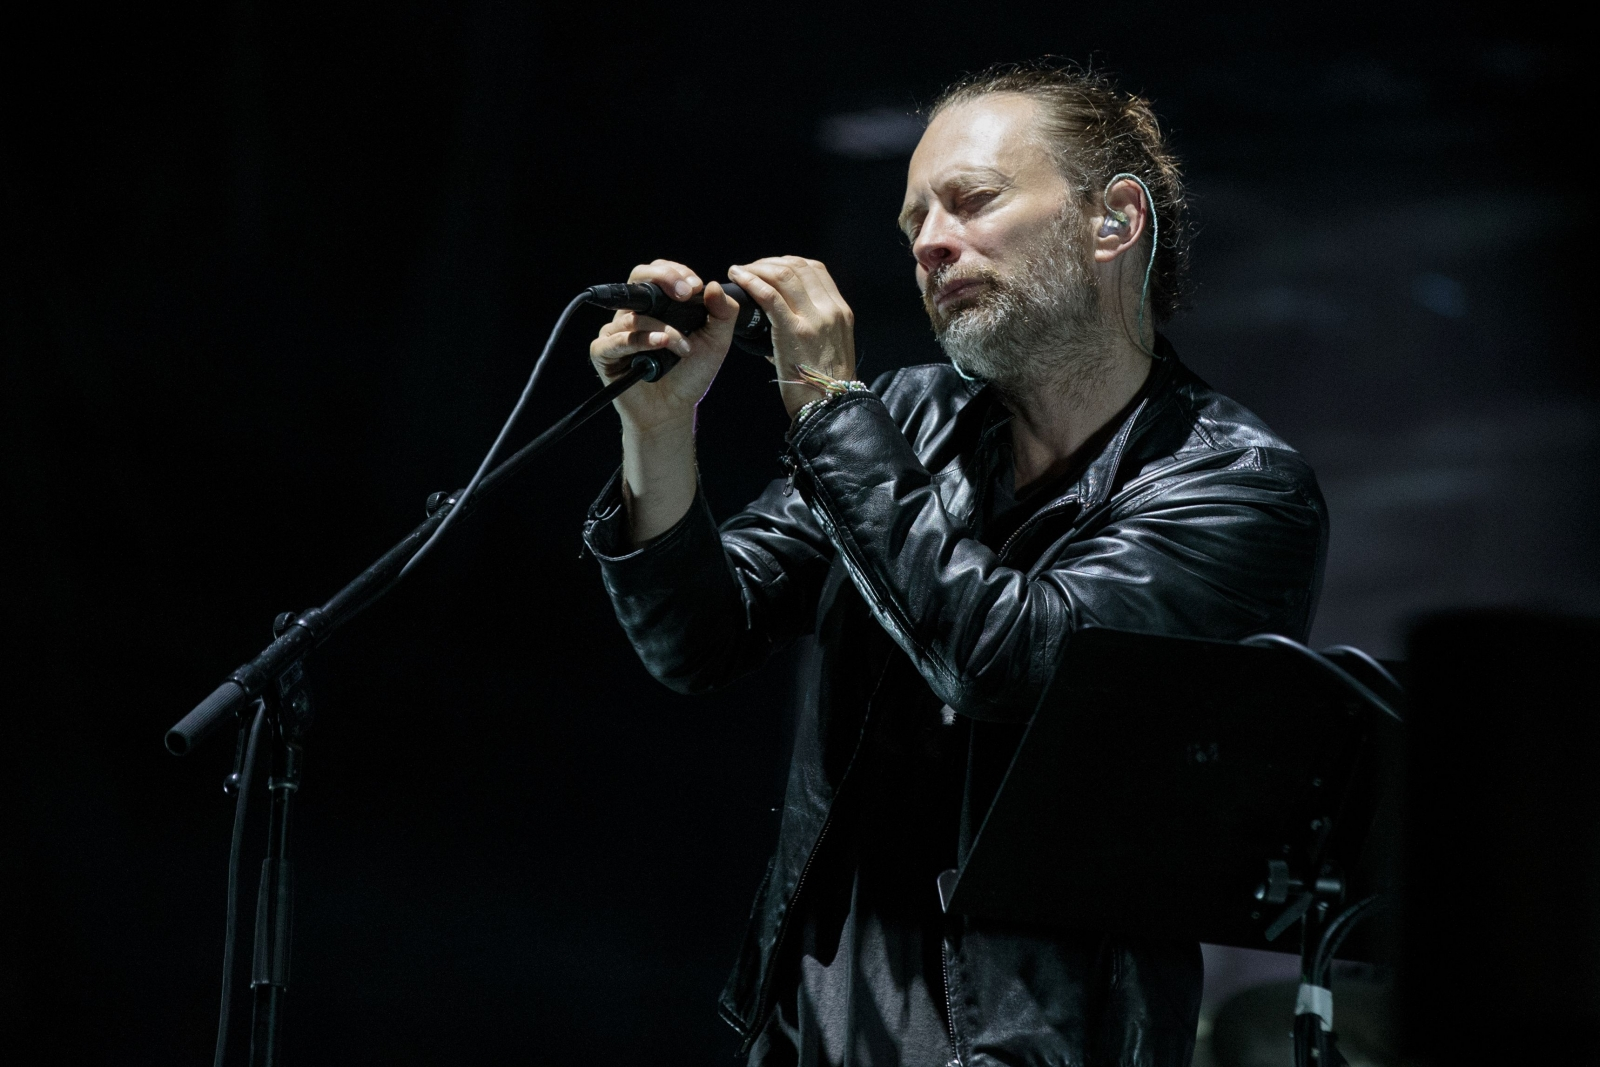 British Rock Icons Radiohead Walk Off Stage In Protest At